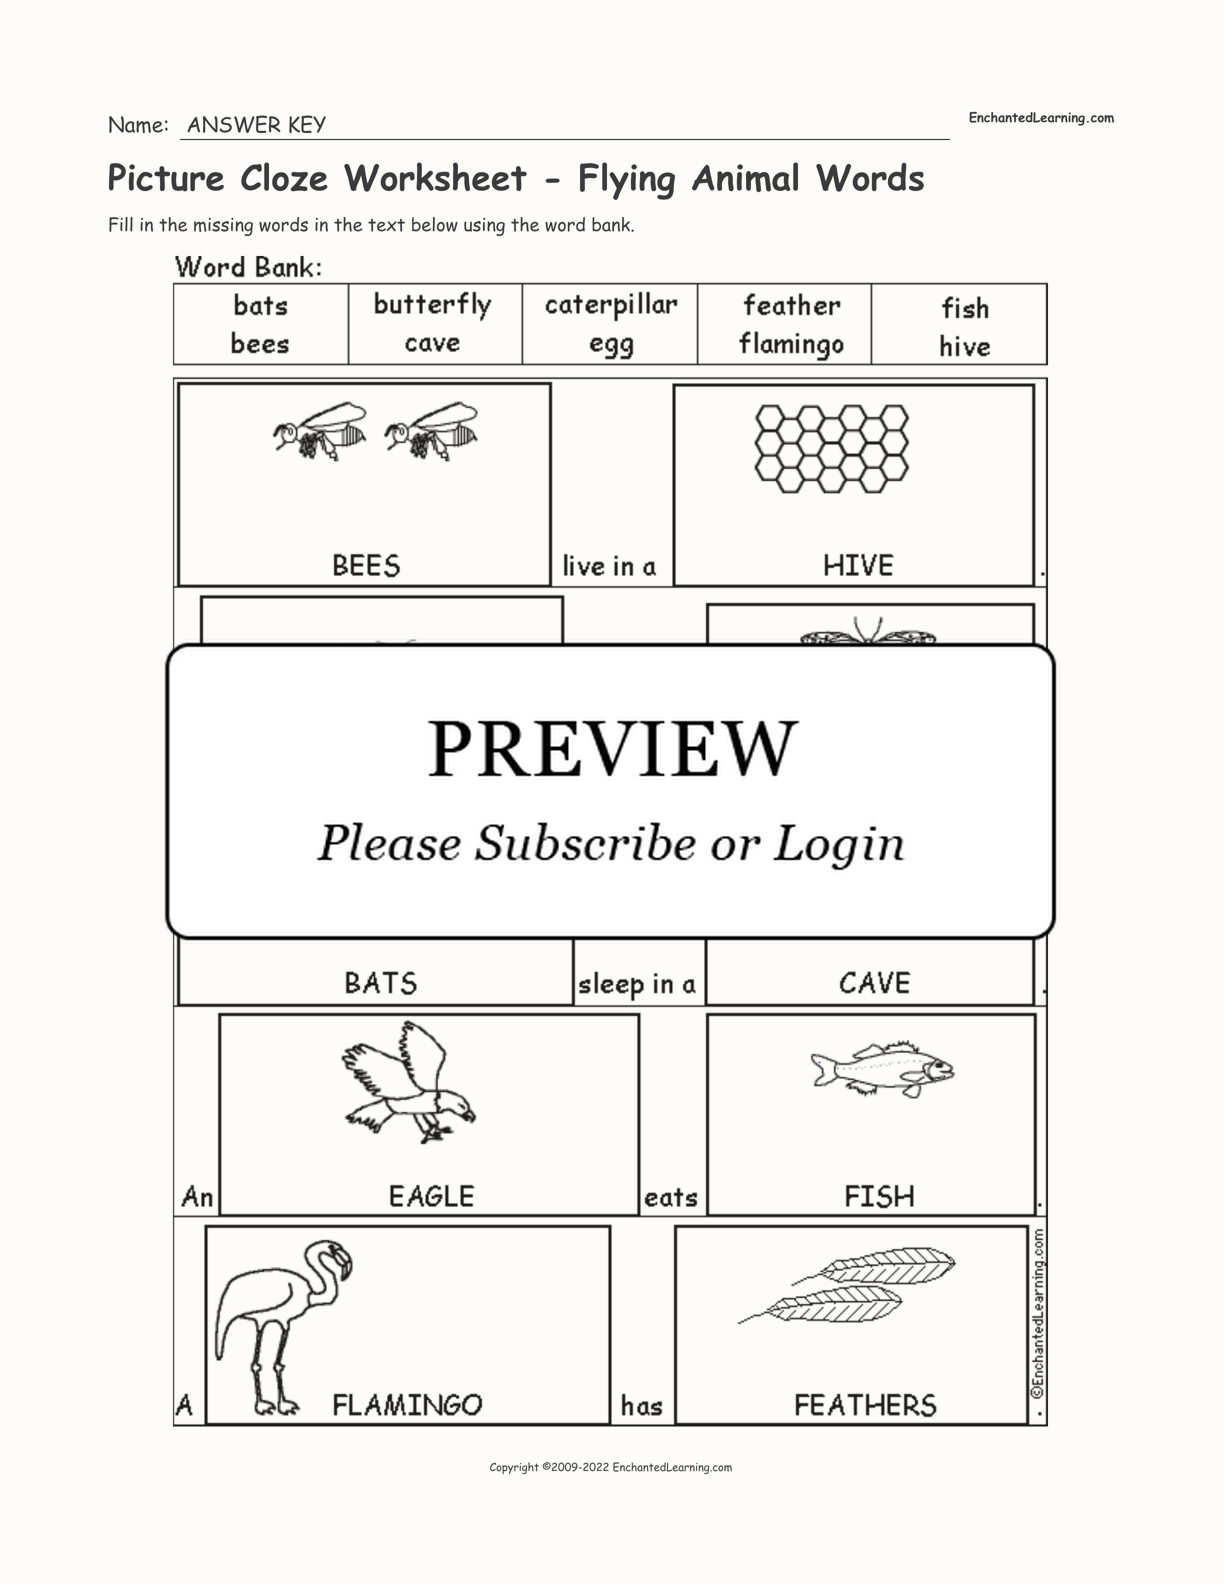 Picture Cloze Worksheet - Flying Animal Words interactive worksheet page 2